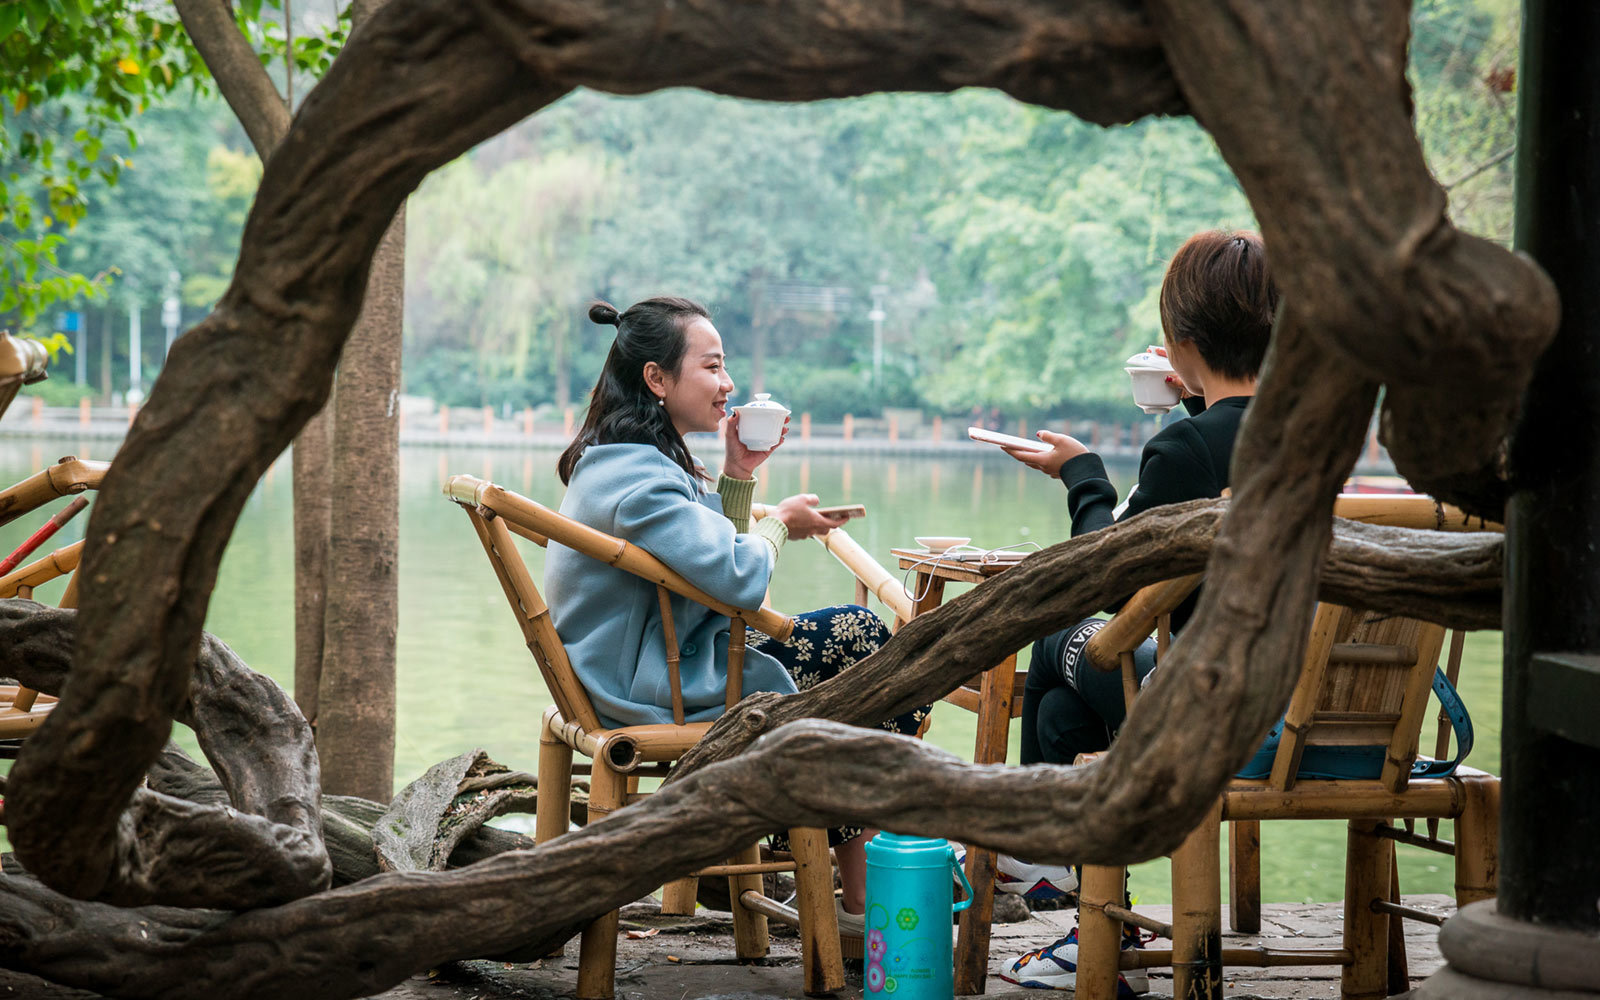 Heming Teahouse, People's Park, Chengdu, China